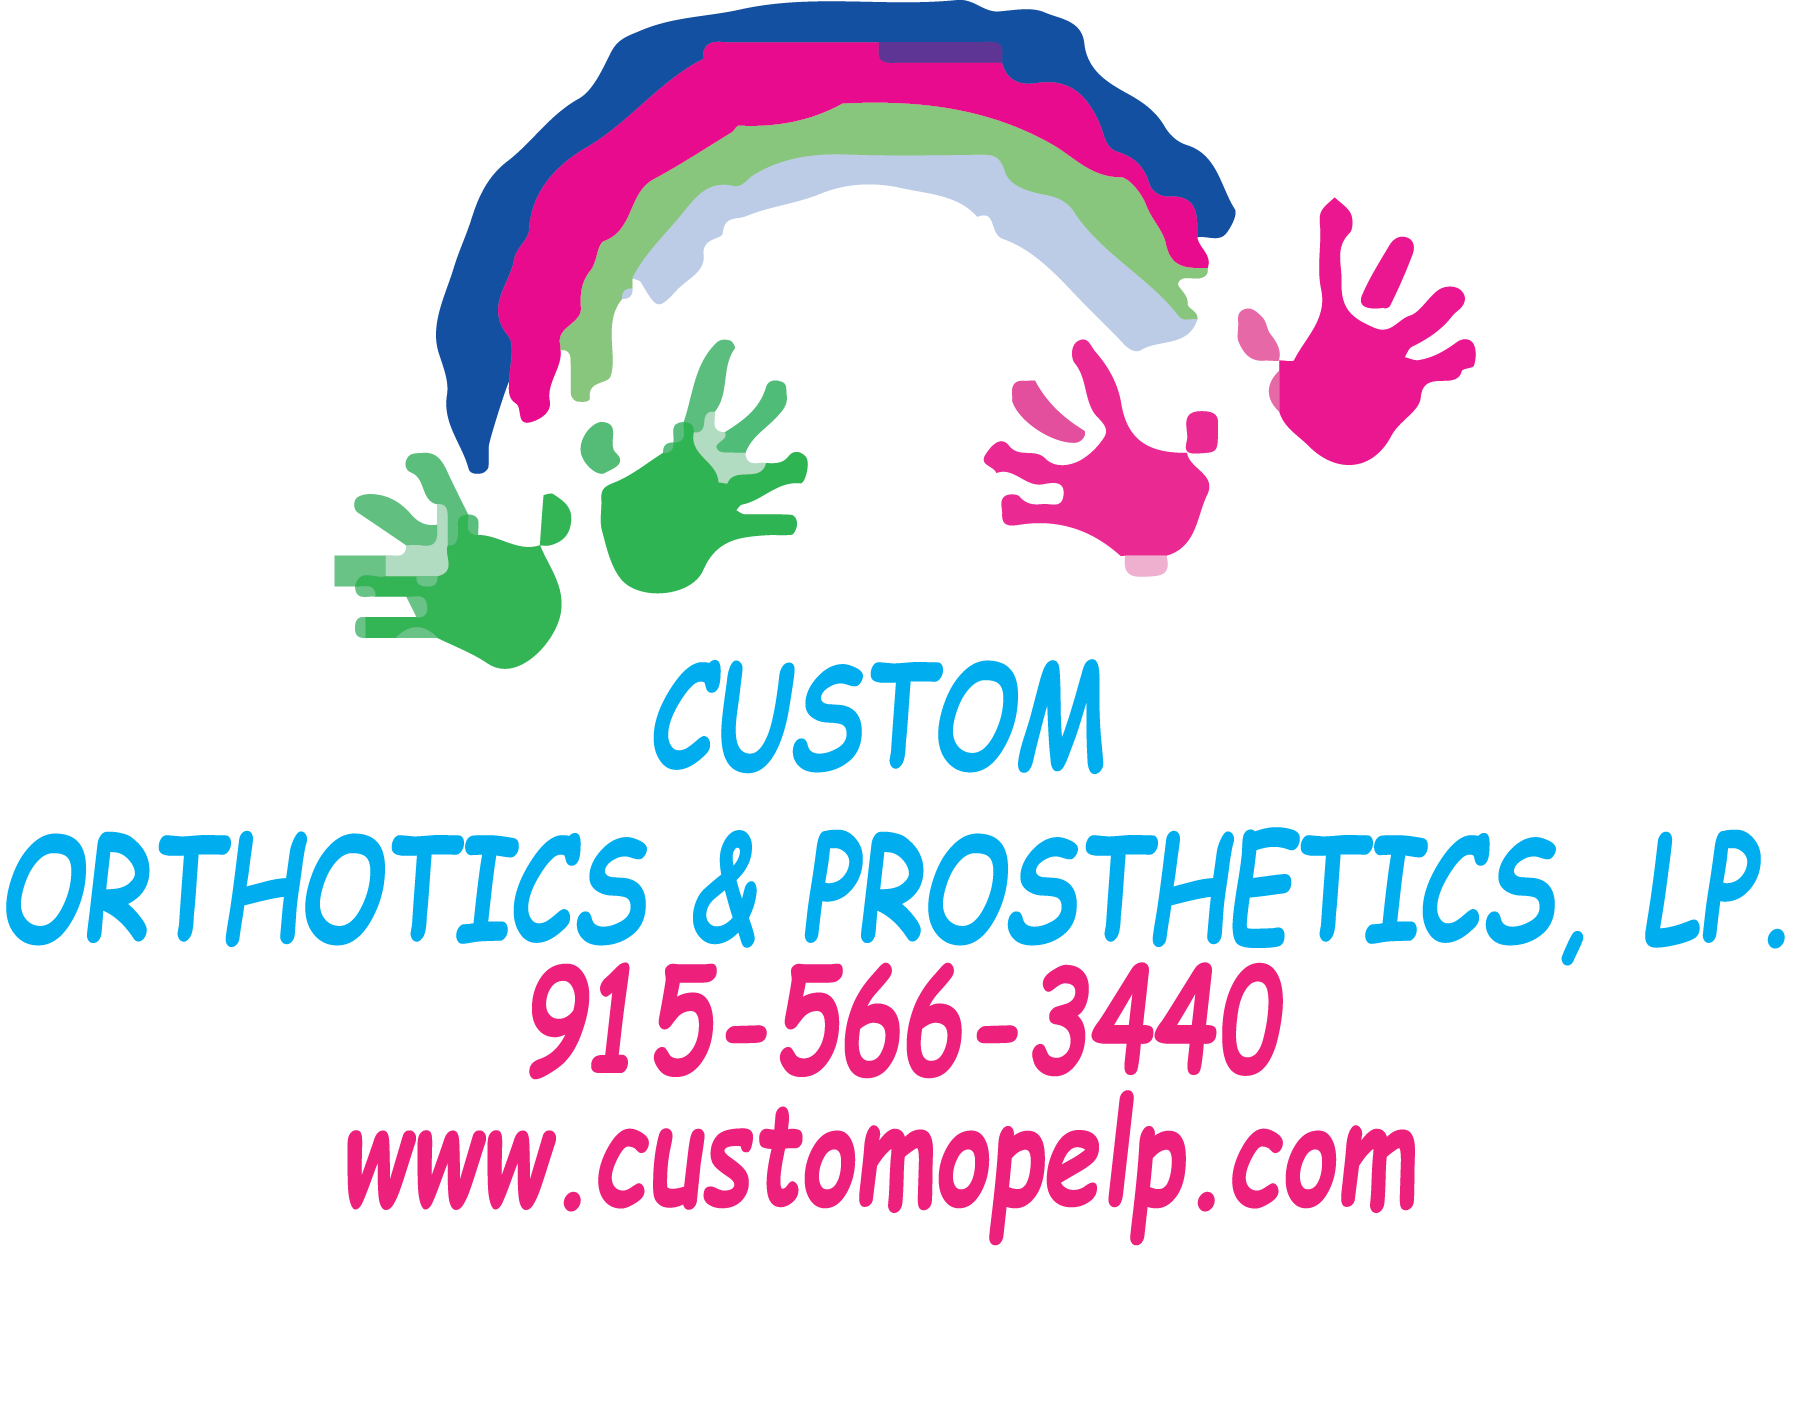 Custom Orthotics and Prosthetics